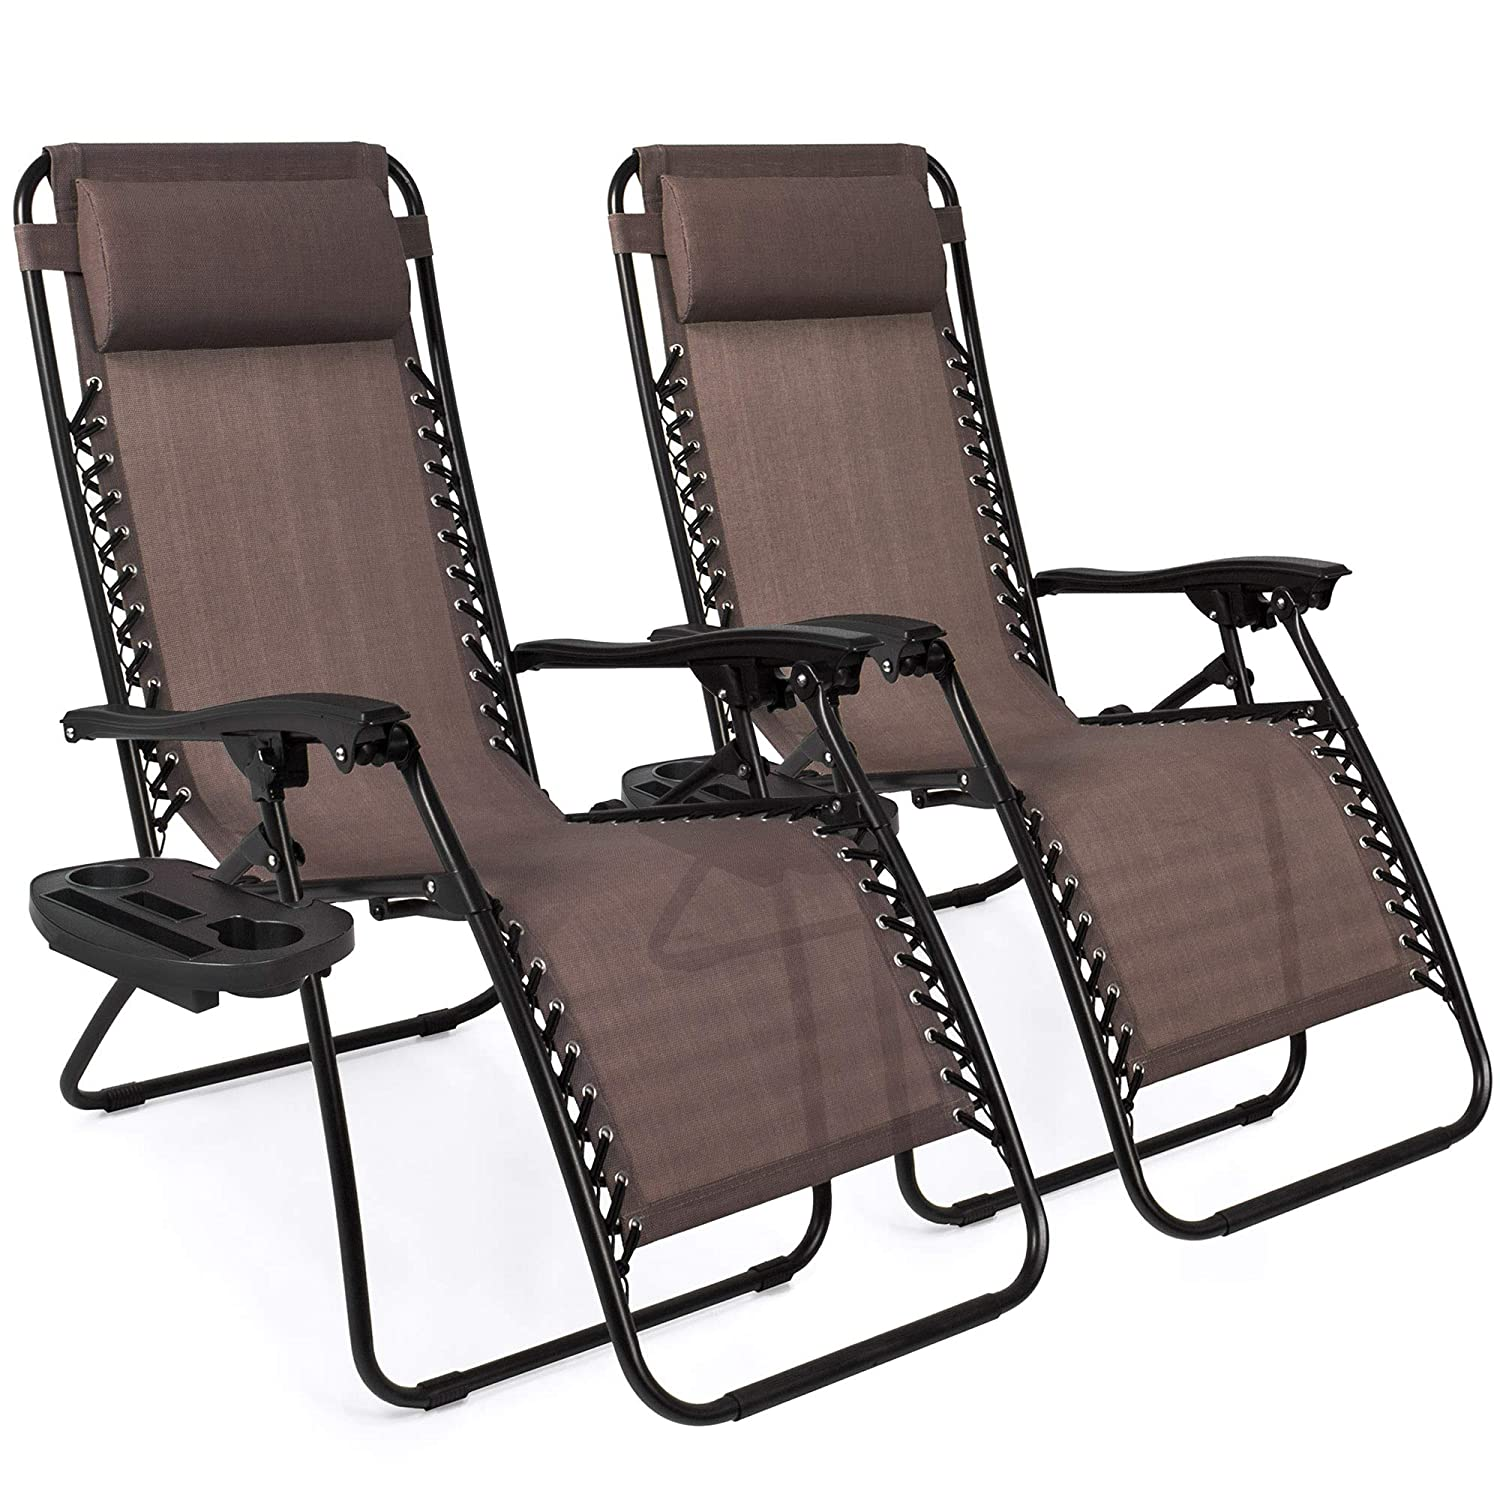 Set of 2 Adjustable Zero Gravity Lounge Chair Recliners for Patio & Pool